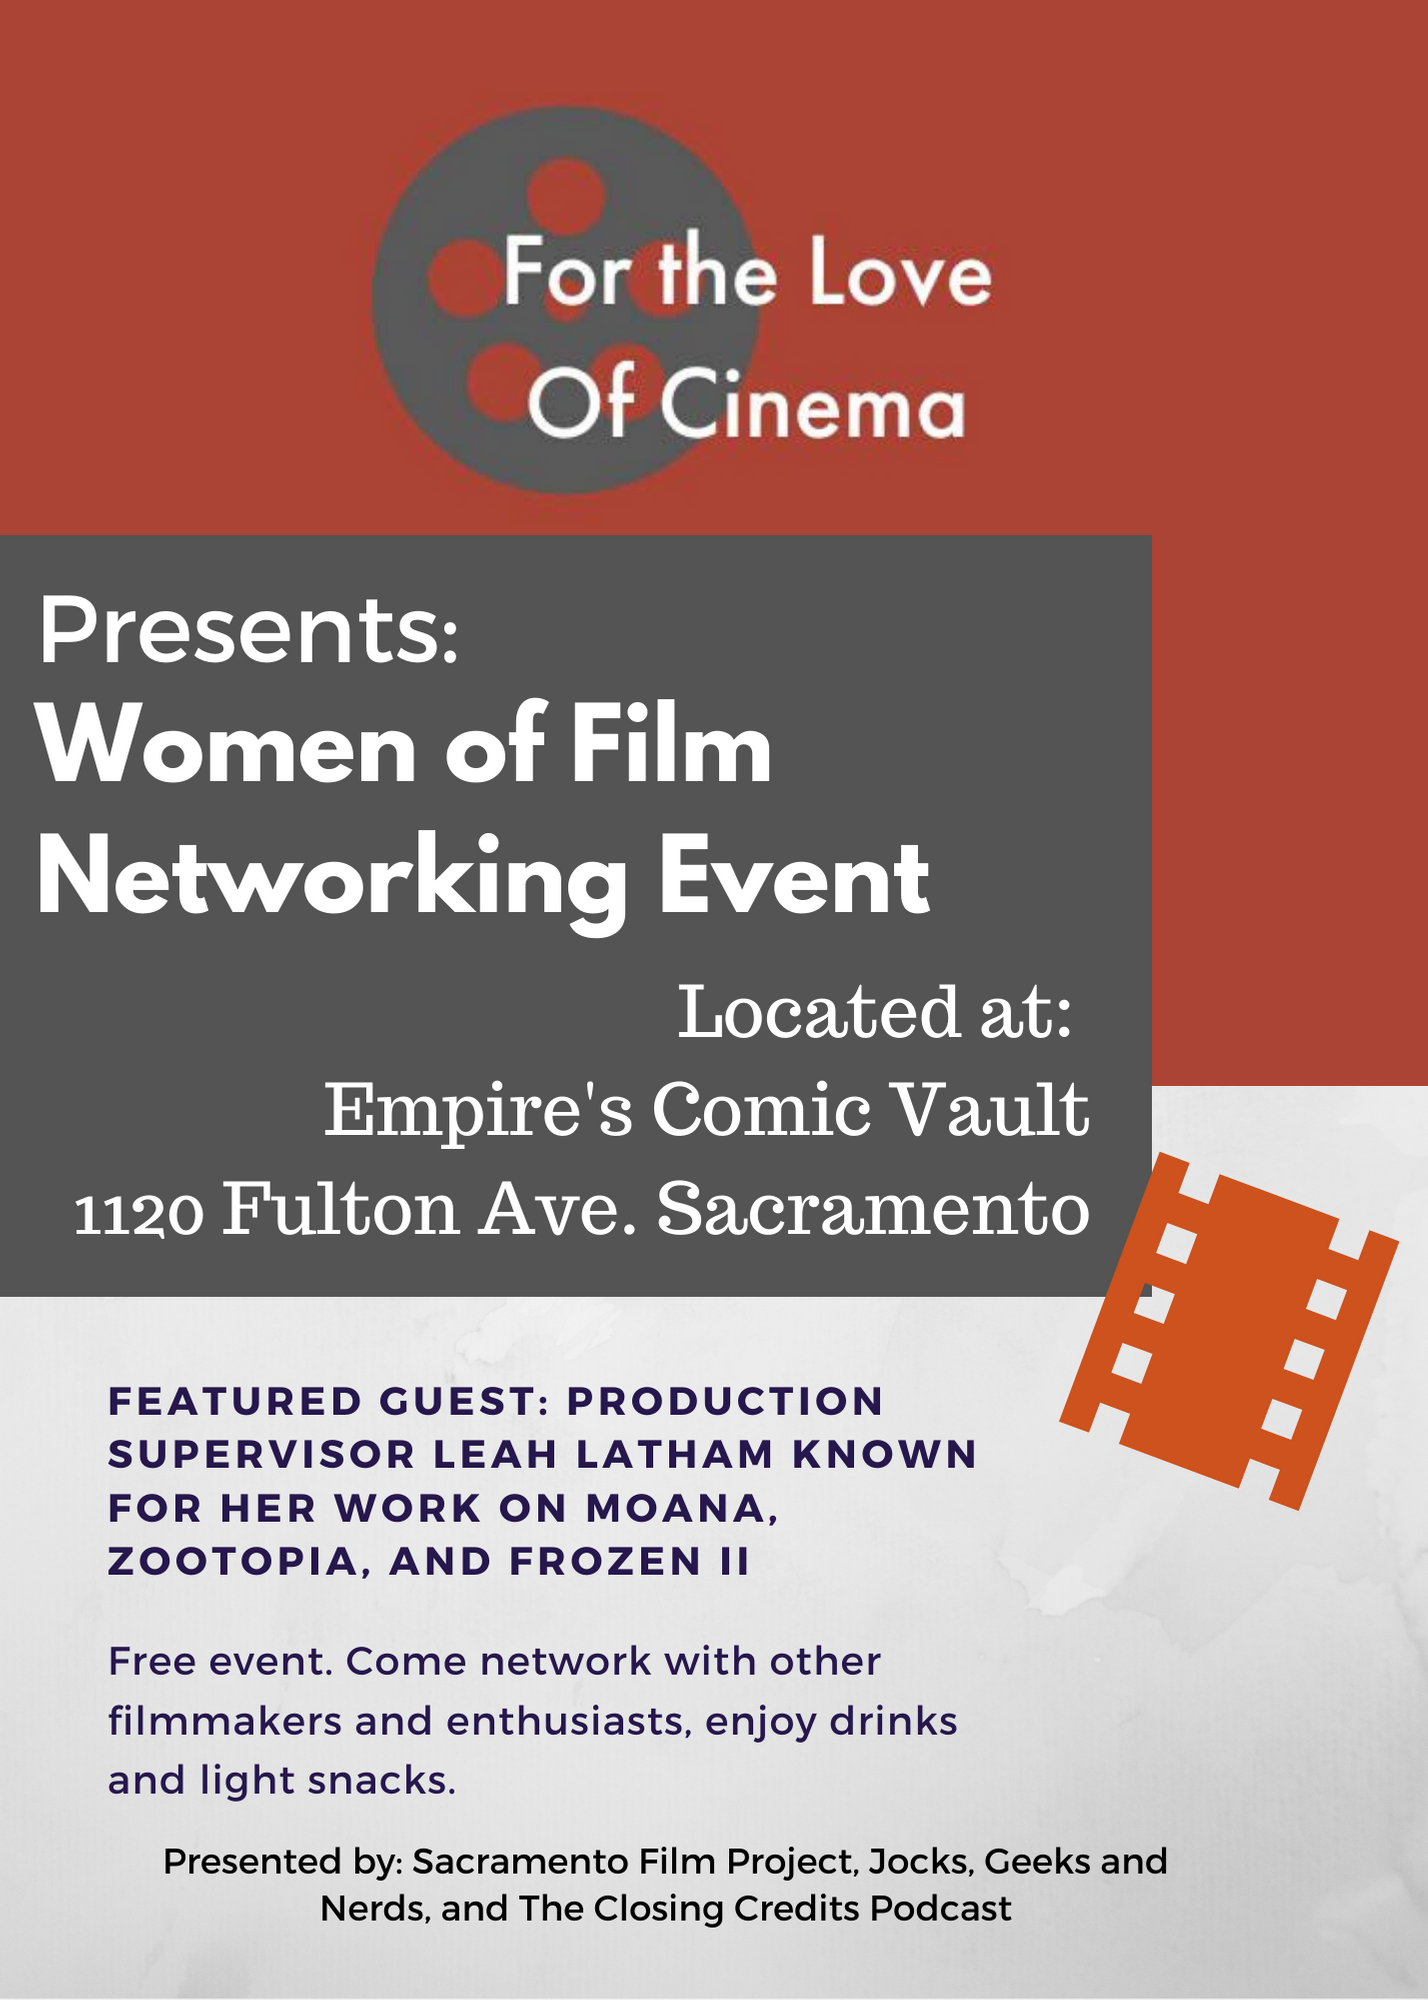 For the Love of Cinema: Women in Film Networking Event